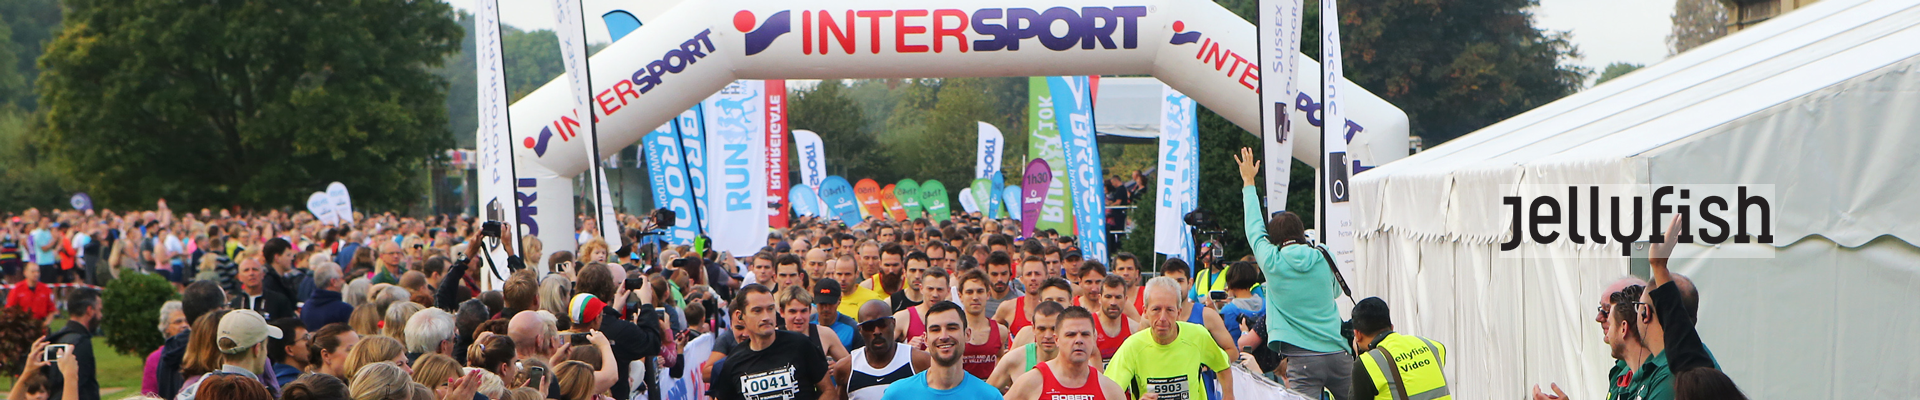 Intersport Run Reigate 2017